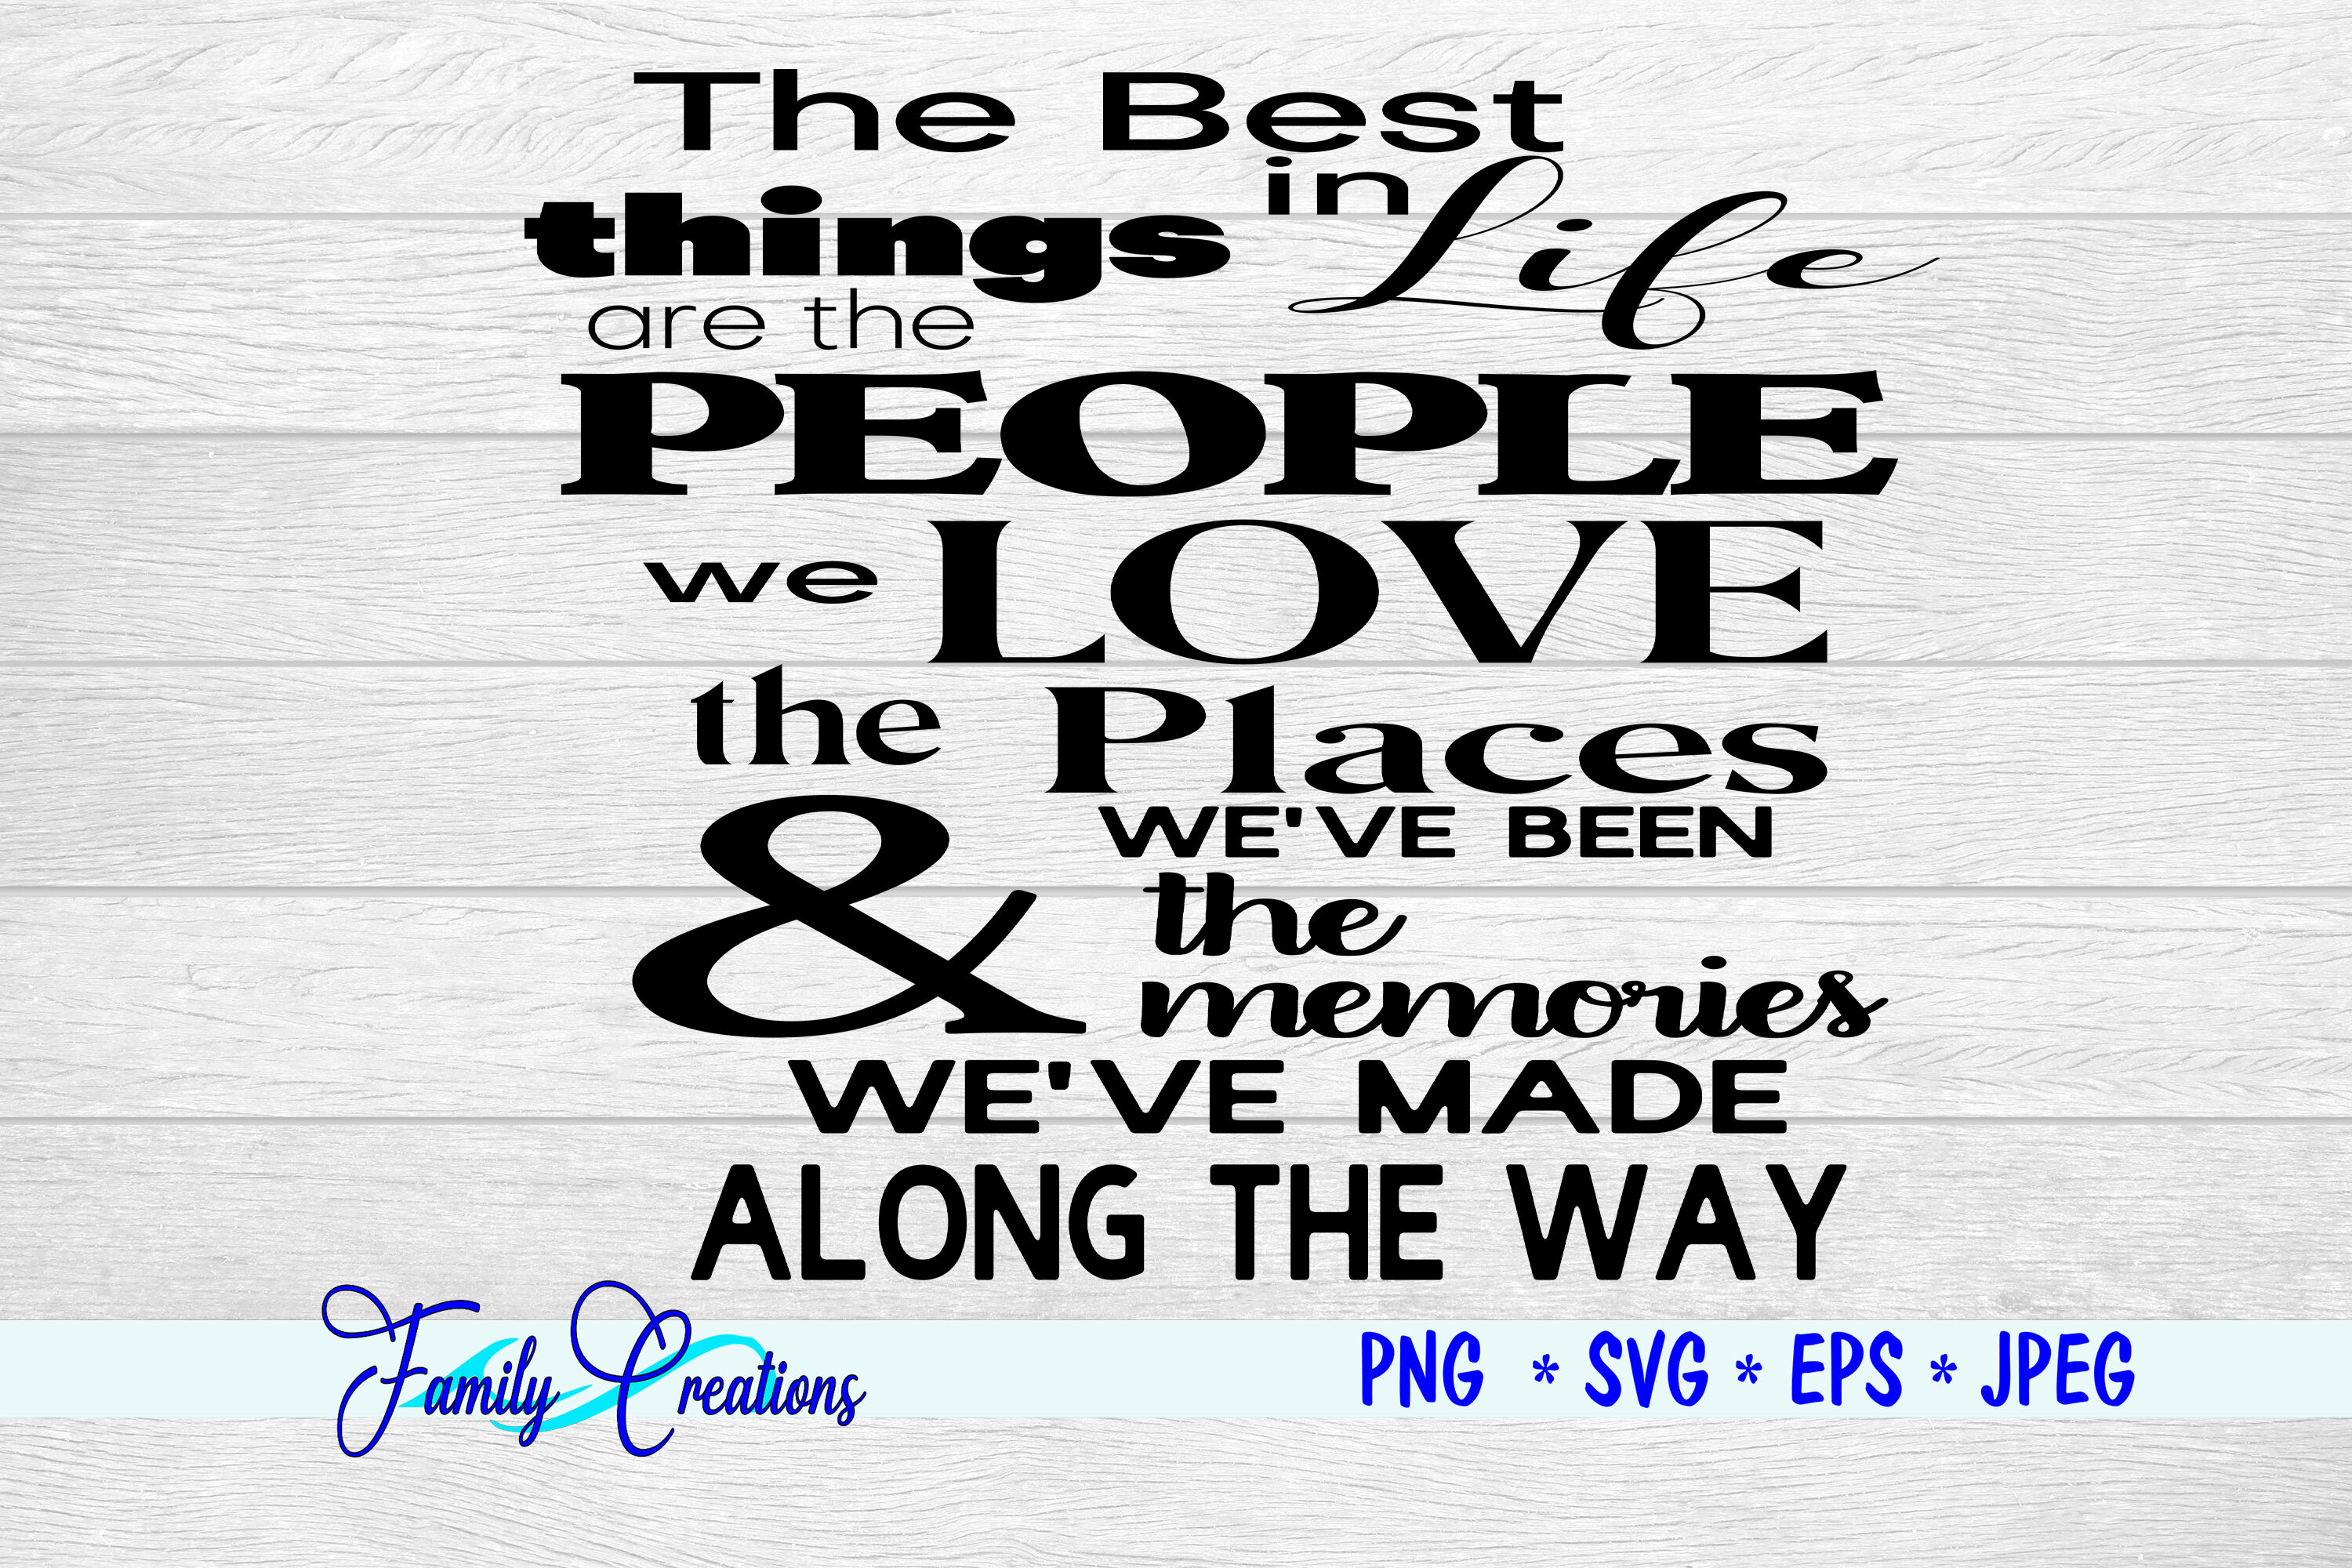 The Best Things In Life Are The People We Love By Family Creations